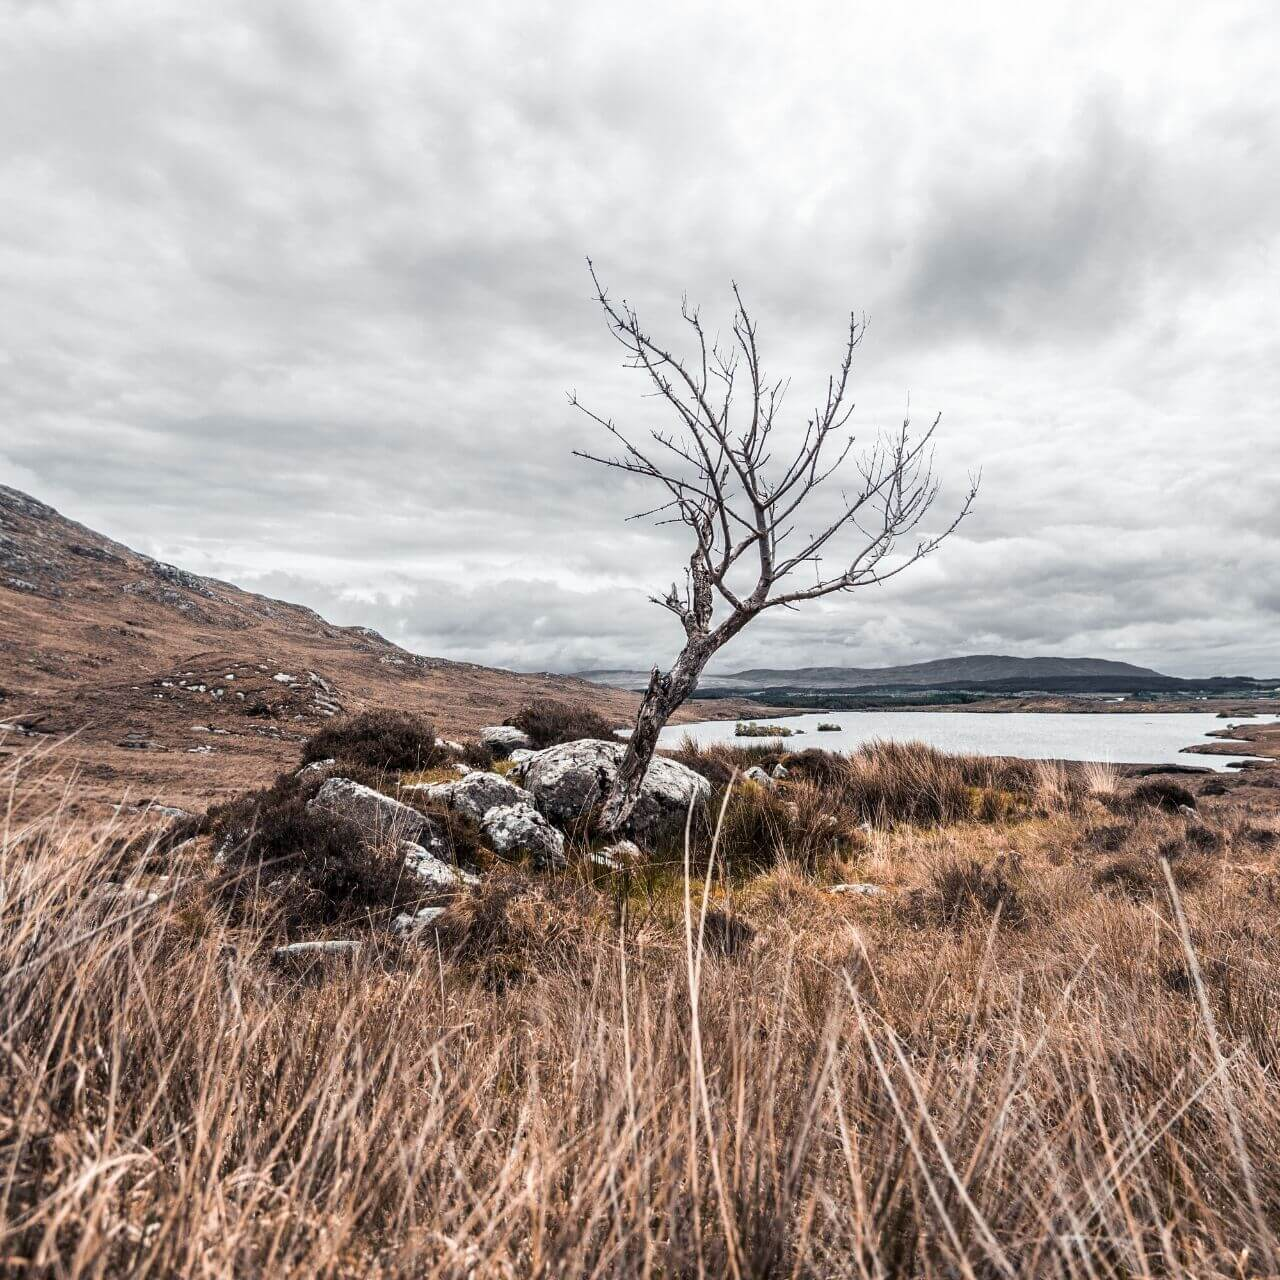 Hawthorn tree in Irish bog